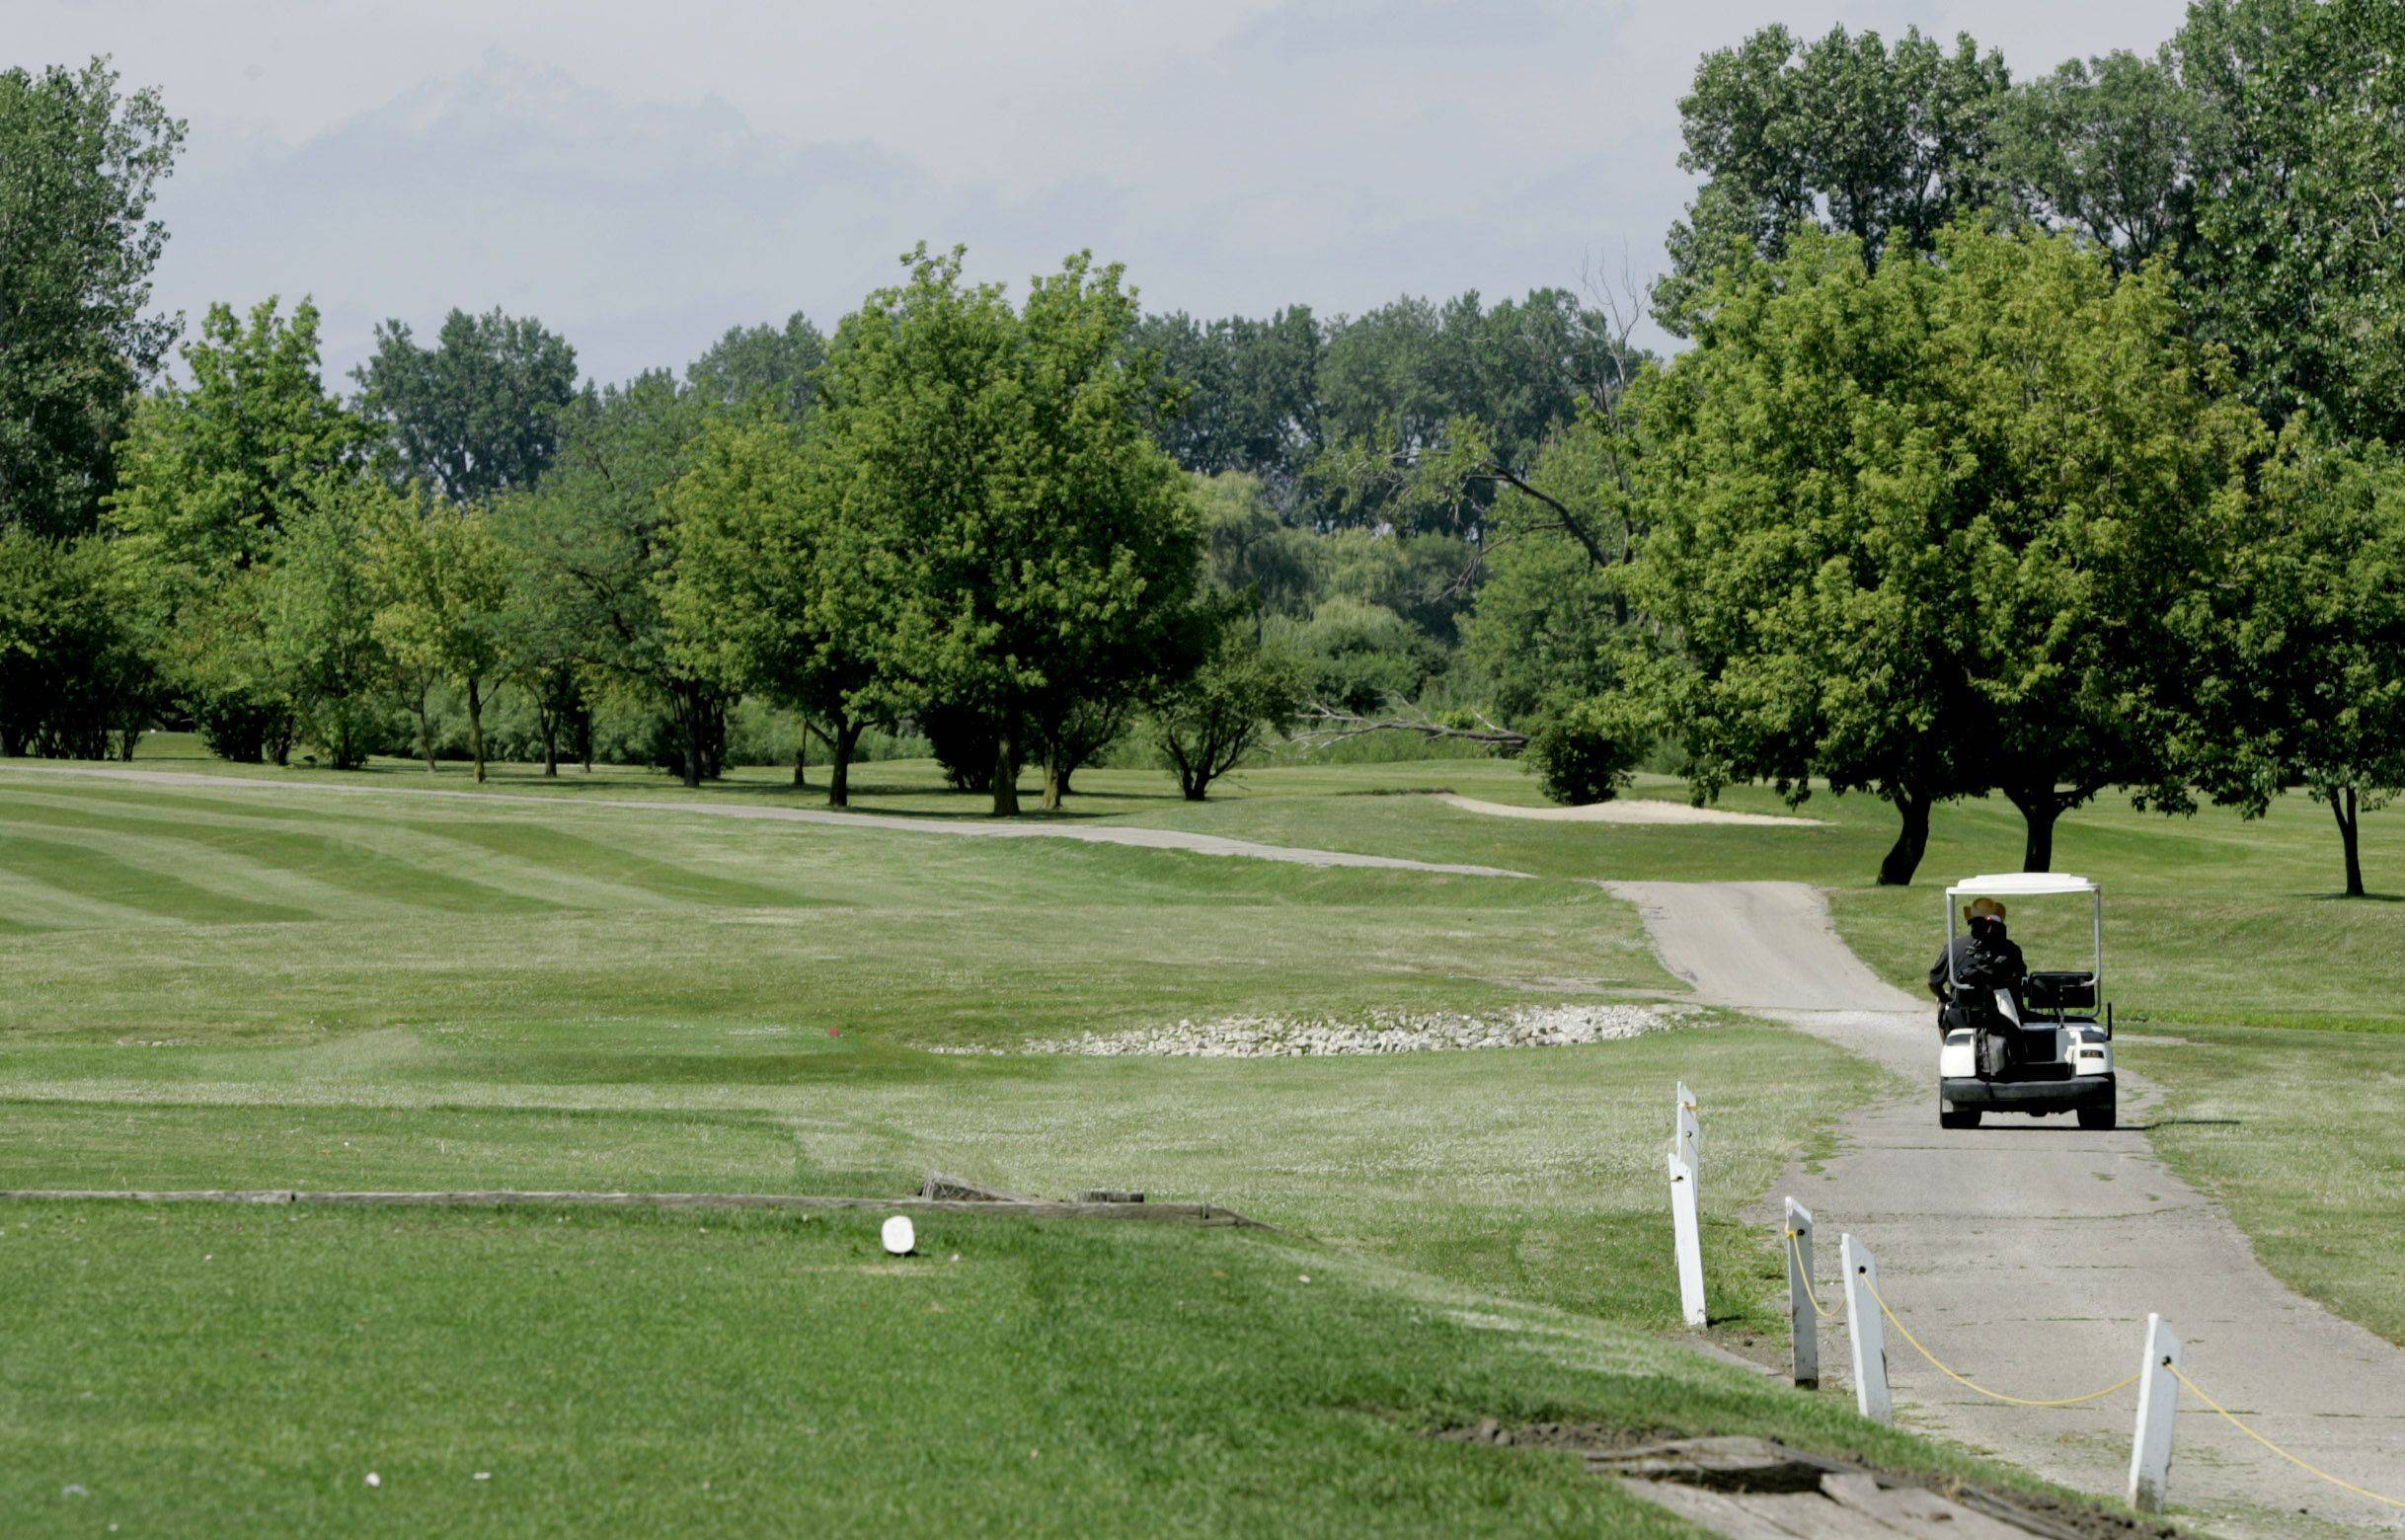 Naperville golf course condemnation takes new twist